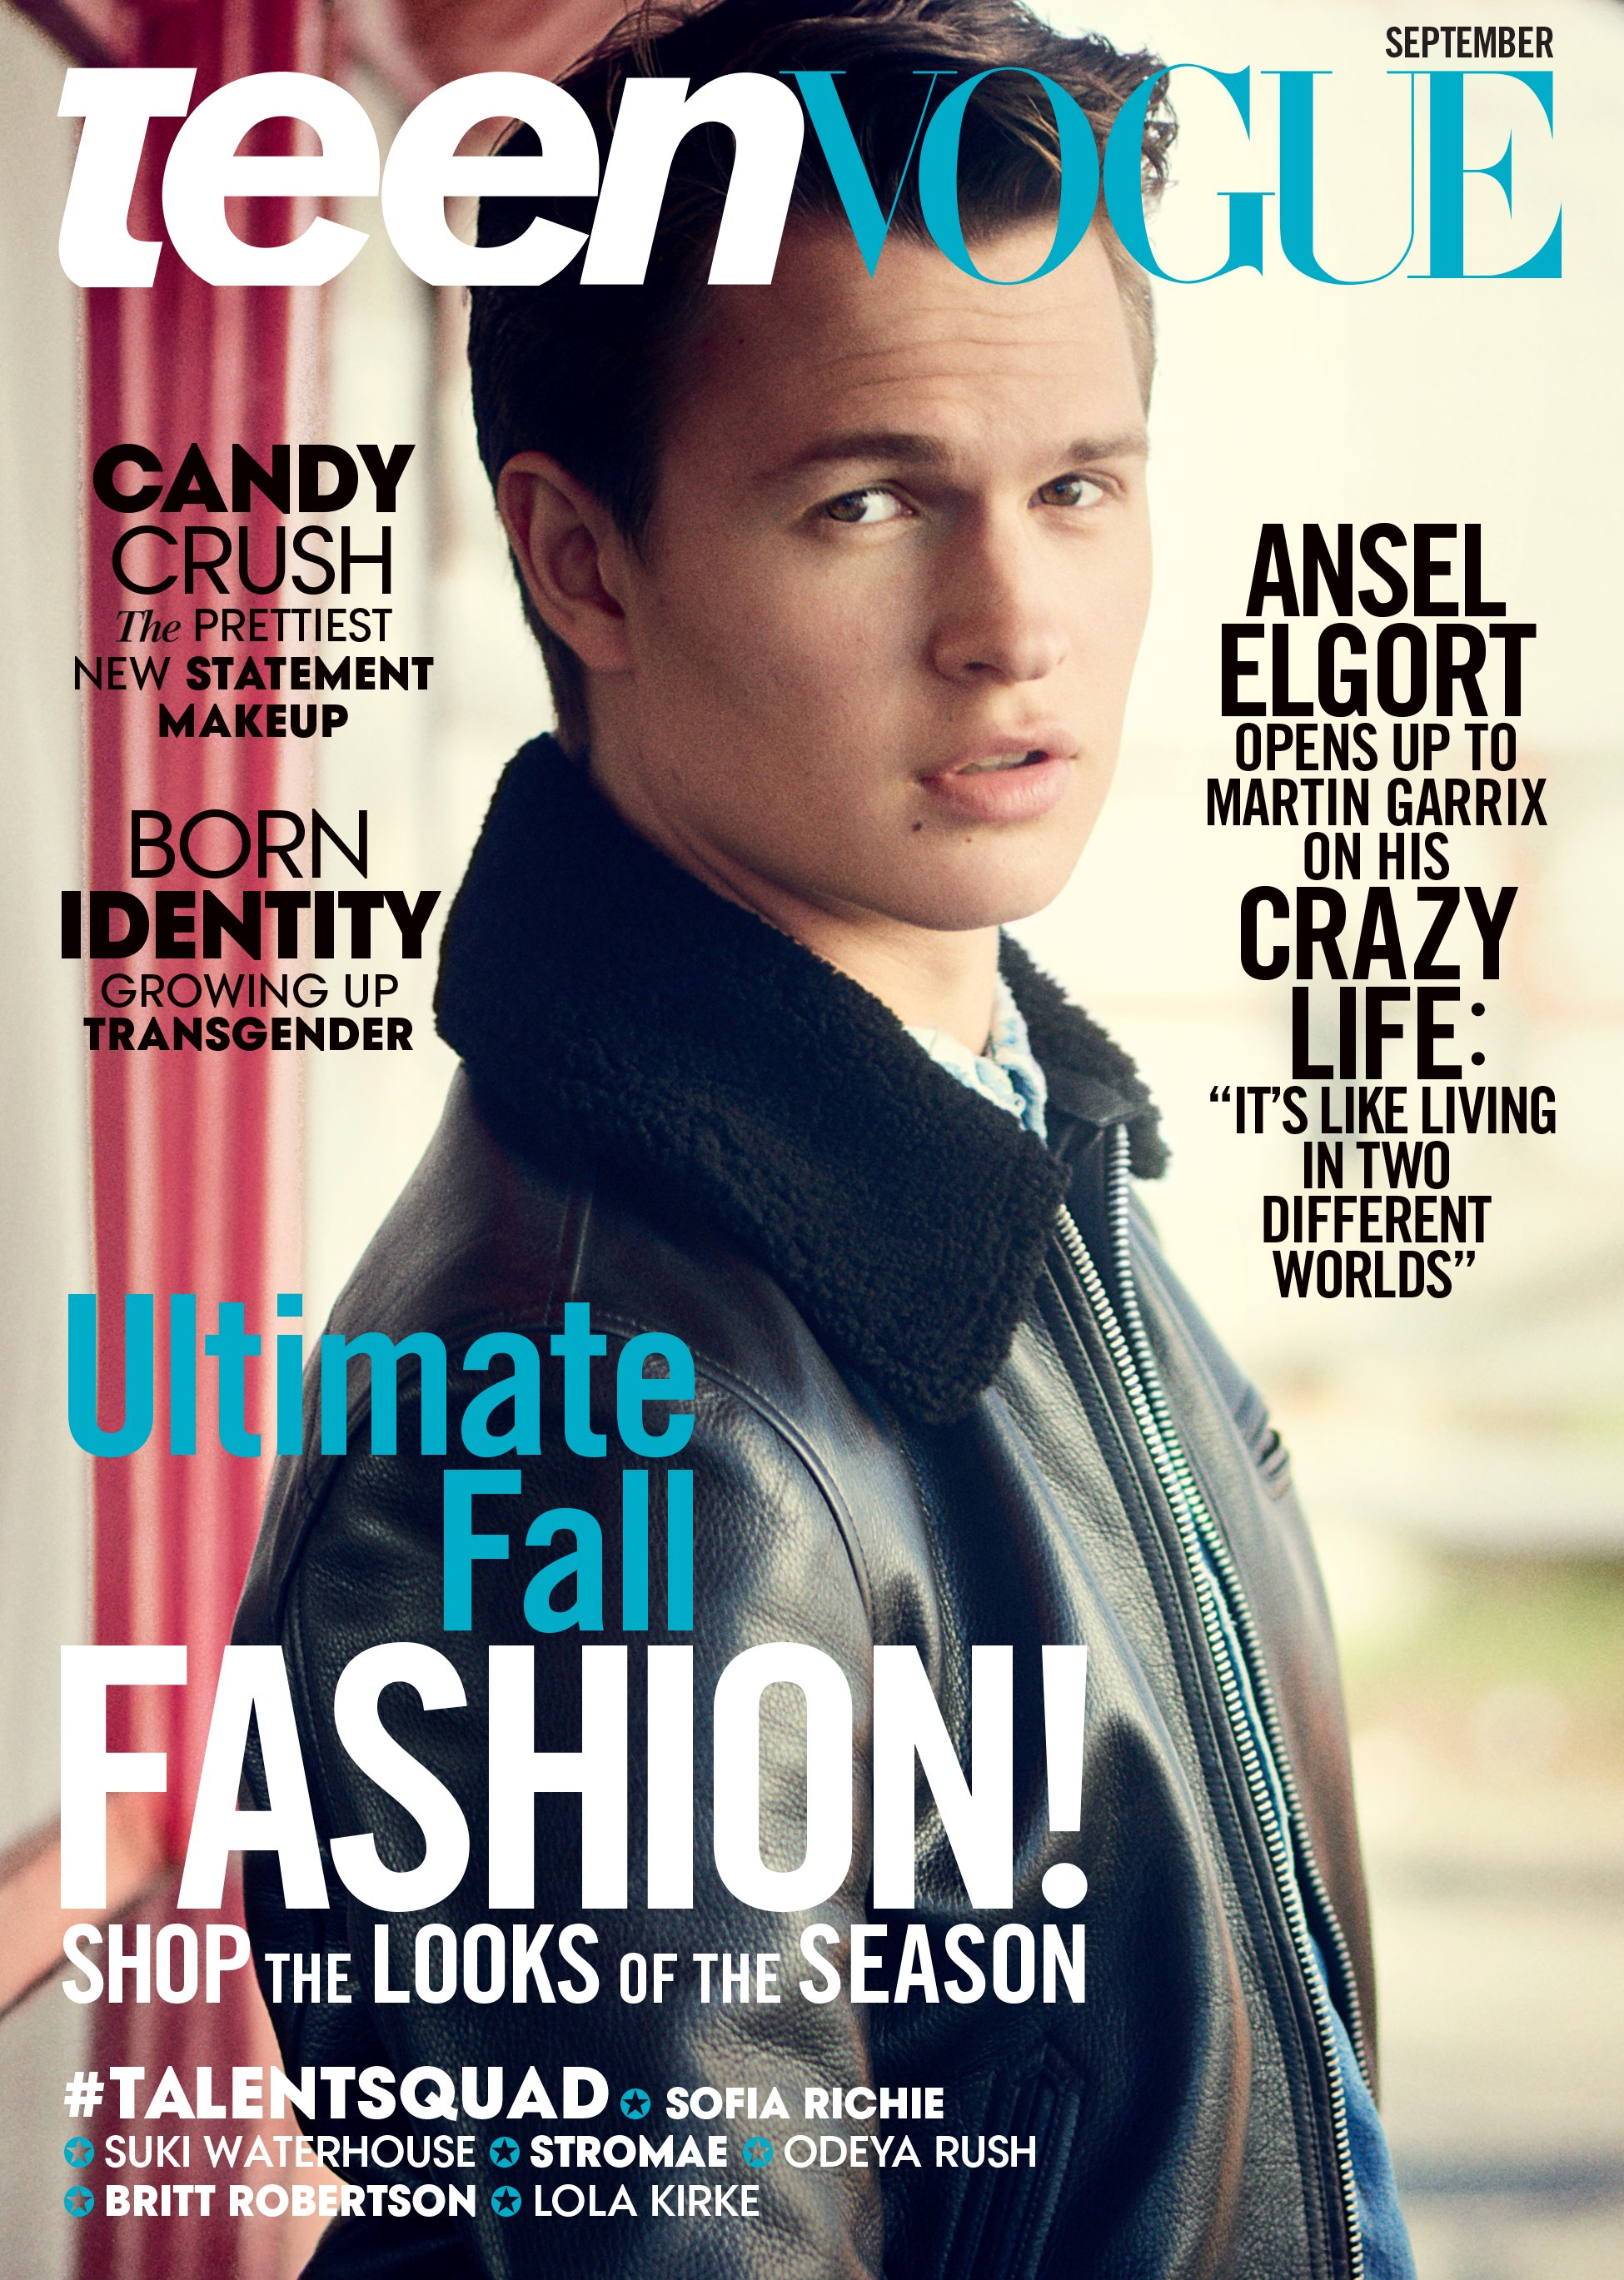 Ansel Elgort Covers Teen Vogue Magazine's September 2015 ...